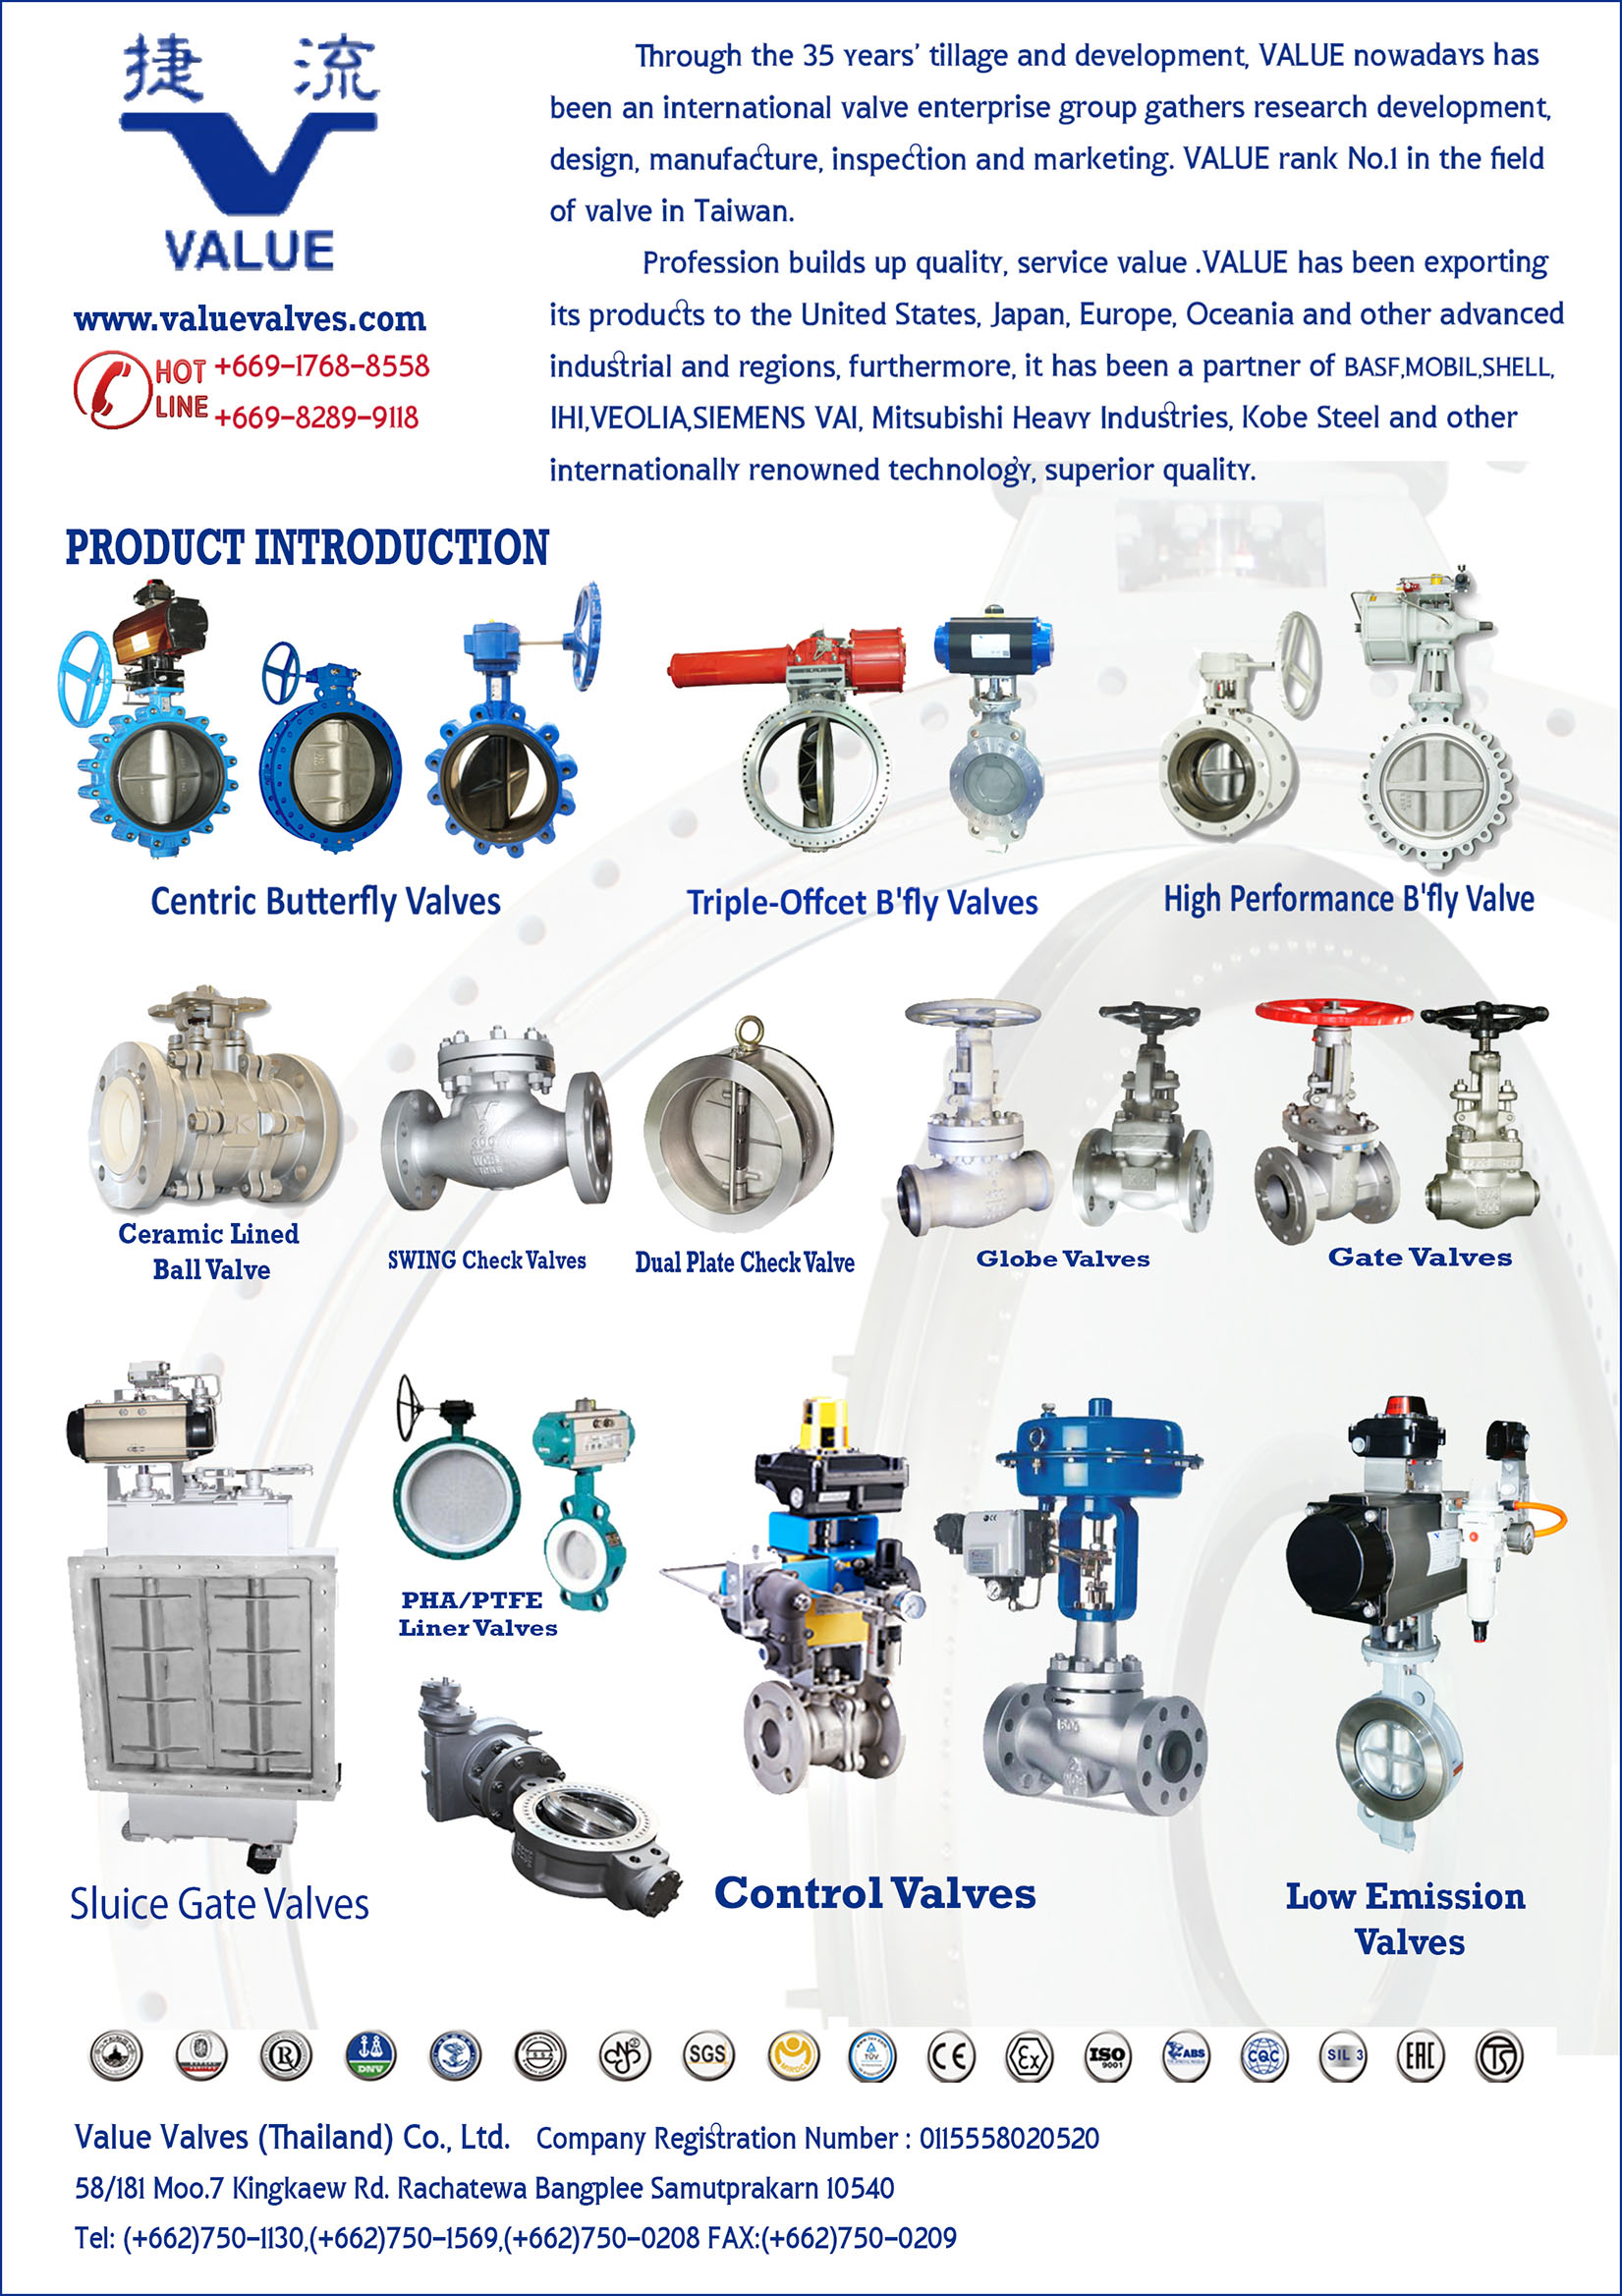 Value Valves (Thailand) Co., Ltd.